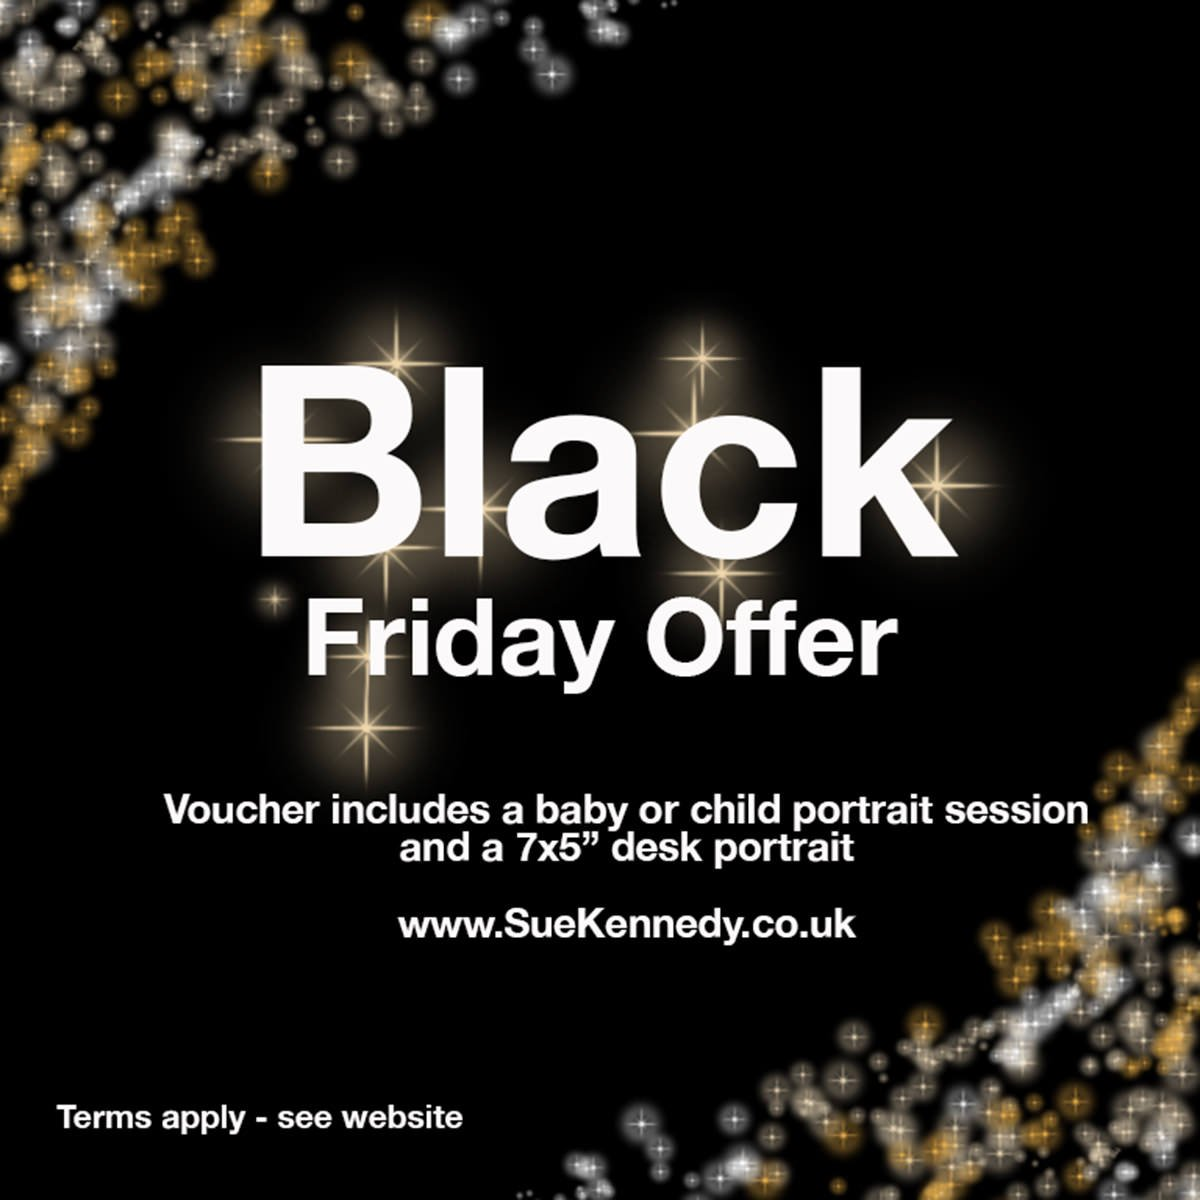 Black Friday offer image